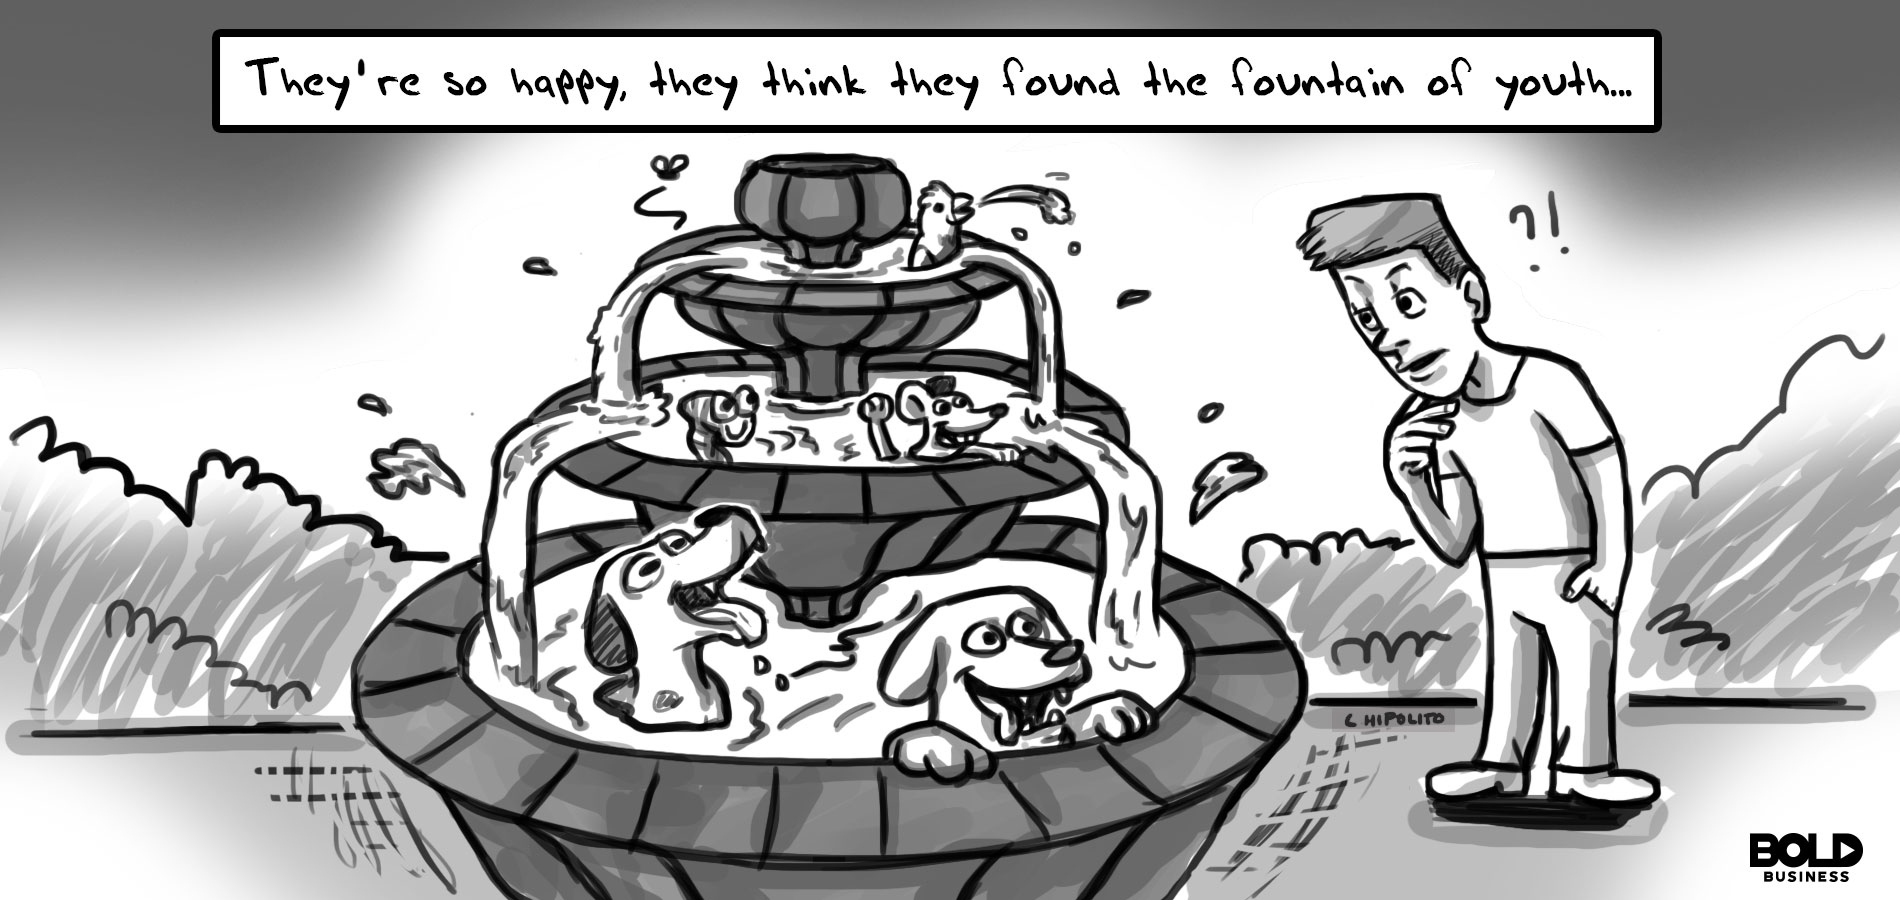 Illustrated cartoon of dogs playing in the fountain for the topic the fountain of youth for dogs.